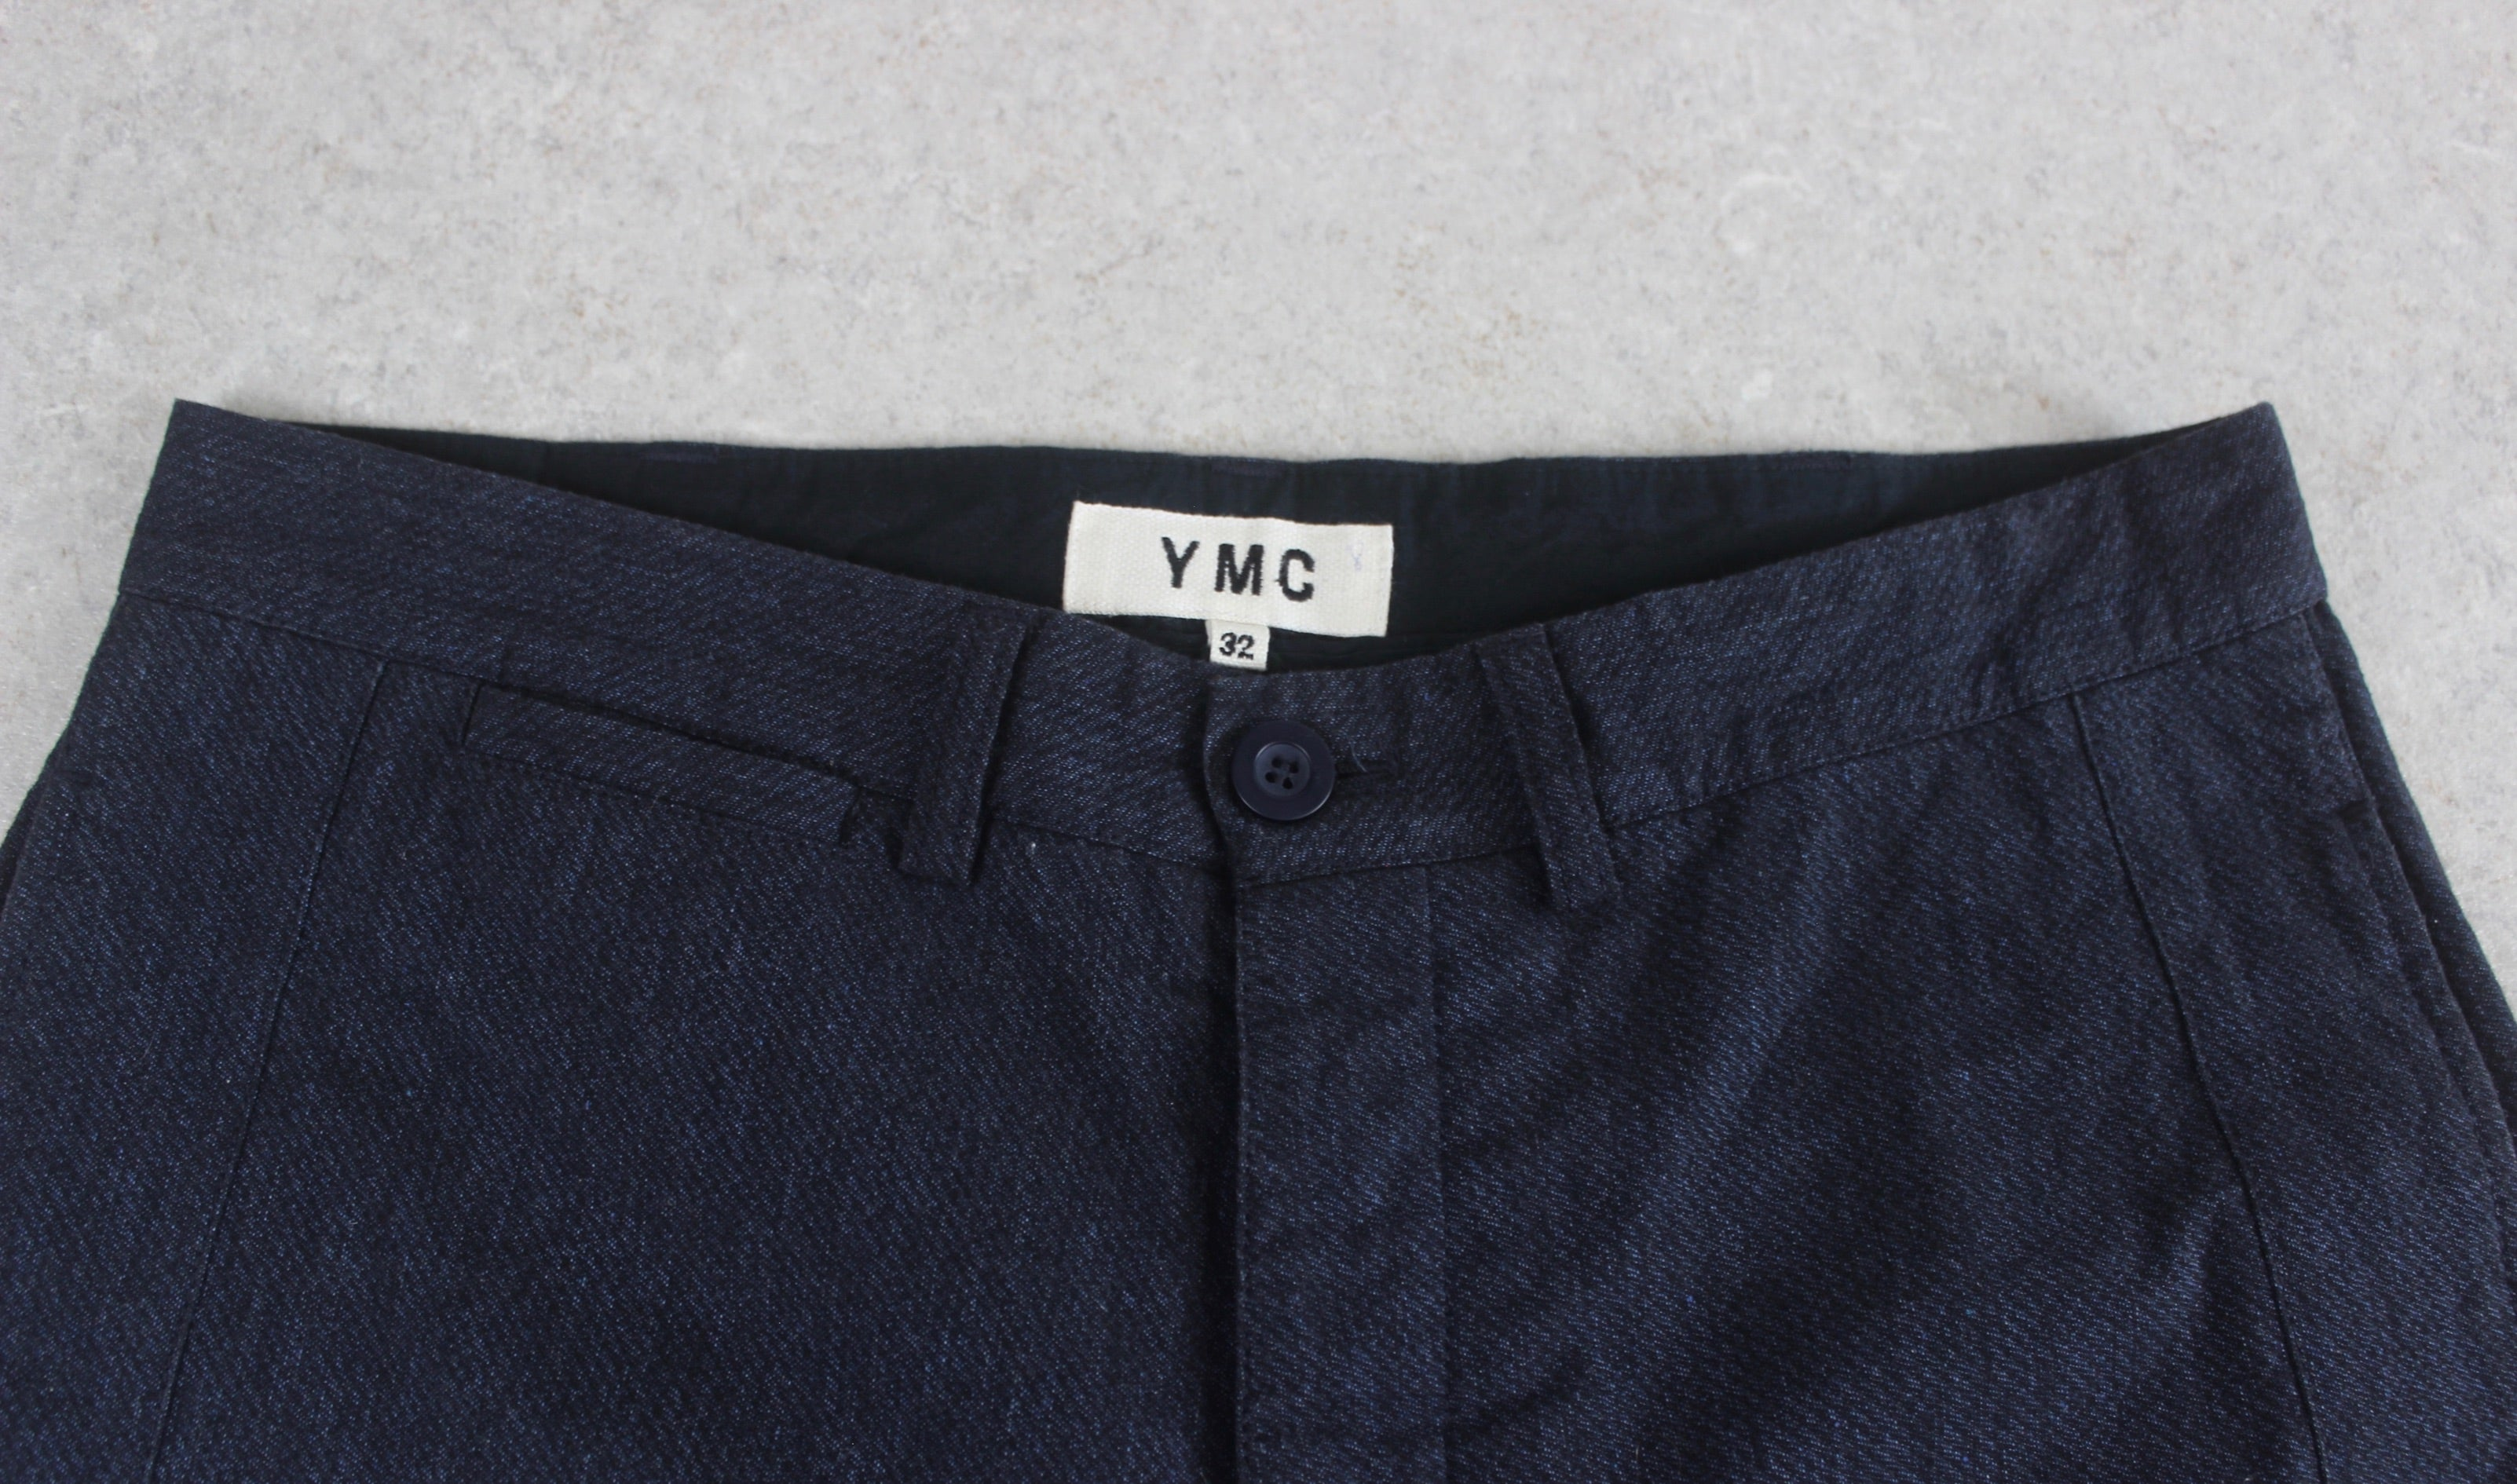 YMC - Trousers - Blue - 32